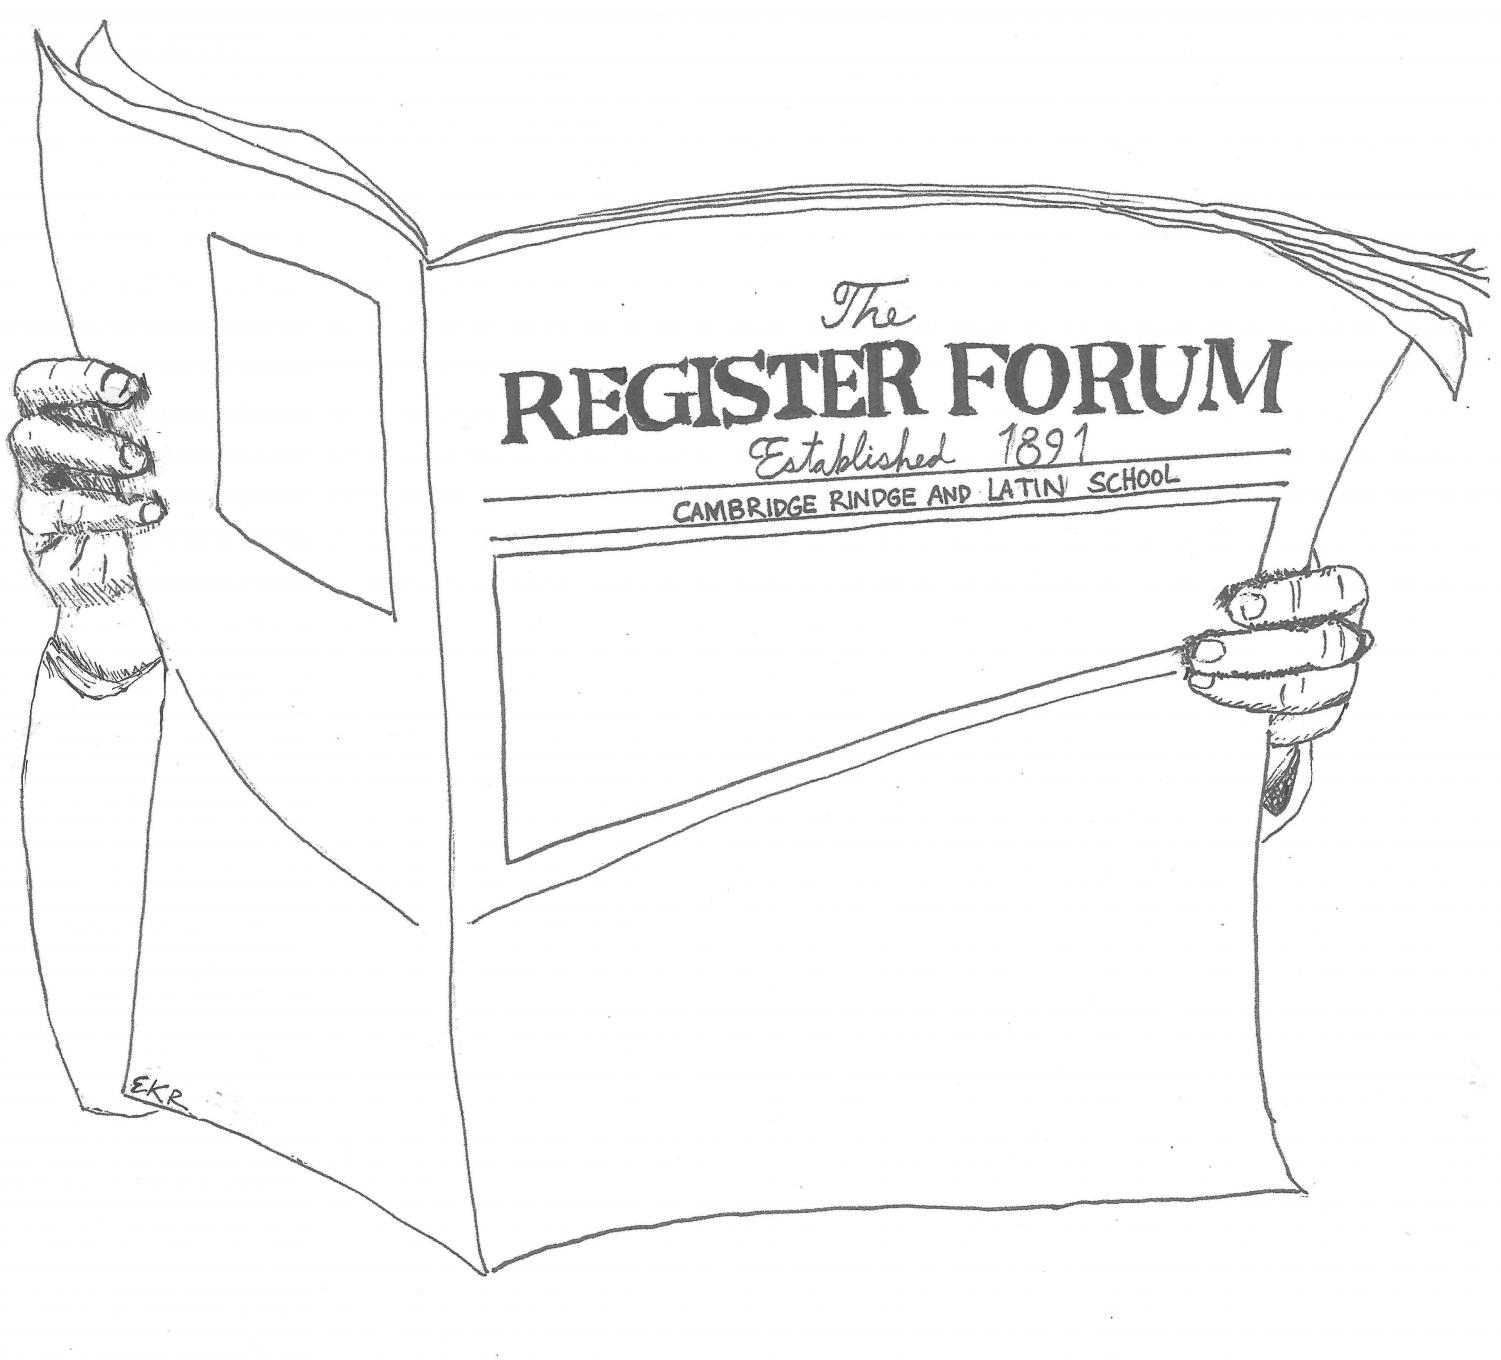 The Register Forum will meet on February 1st to discuss our February edition. All are welcome at our meetings, which take place at 2:30 in Room 2309.